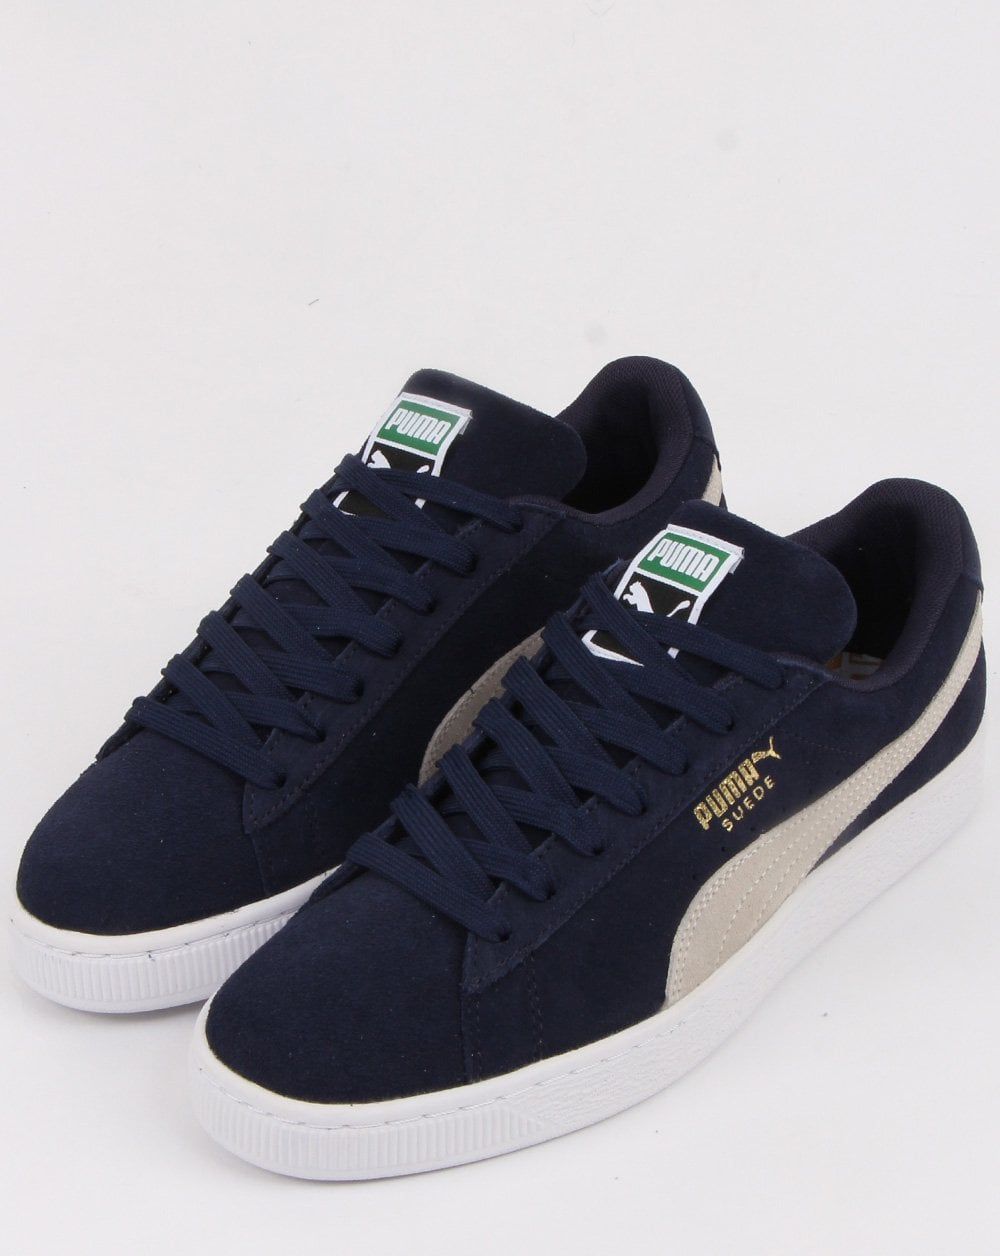 Puma Suede Classic Trainers Navy/white